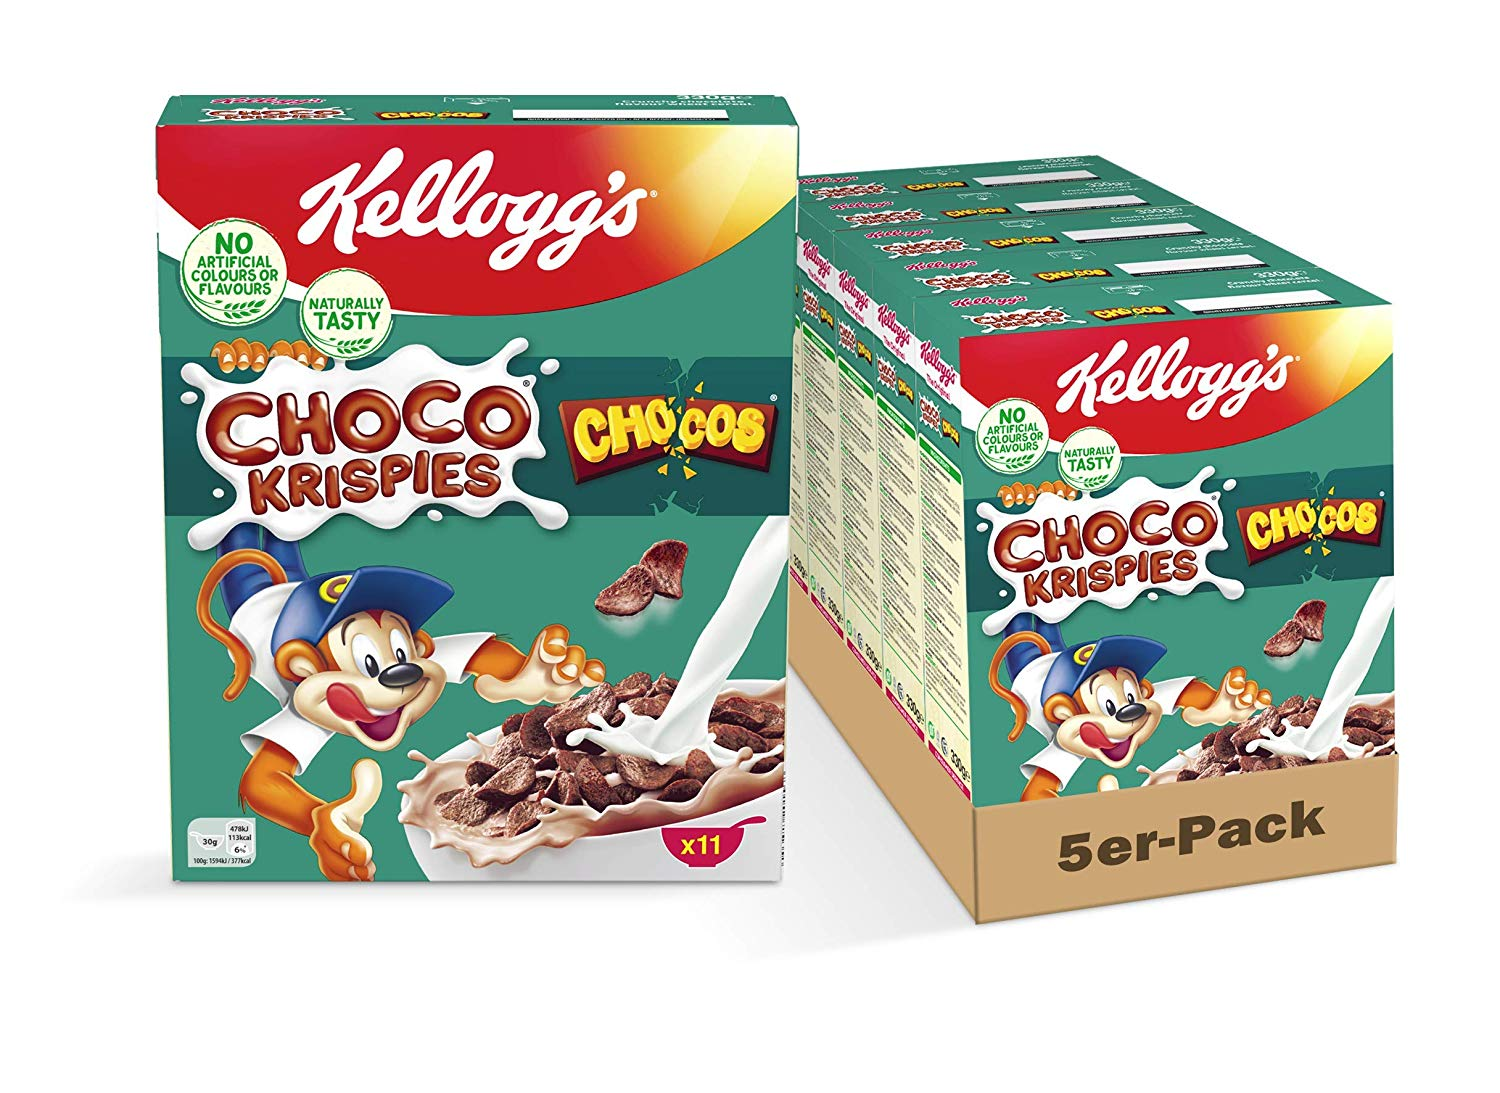 Kellogg Choco Krispies amazon